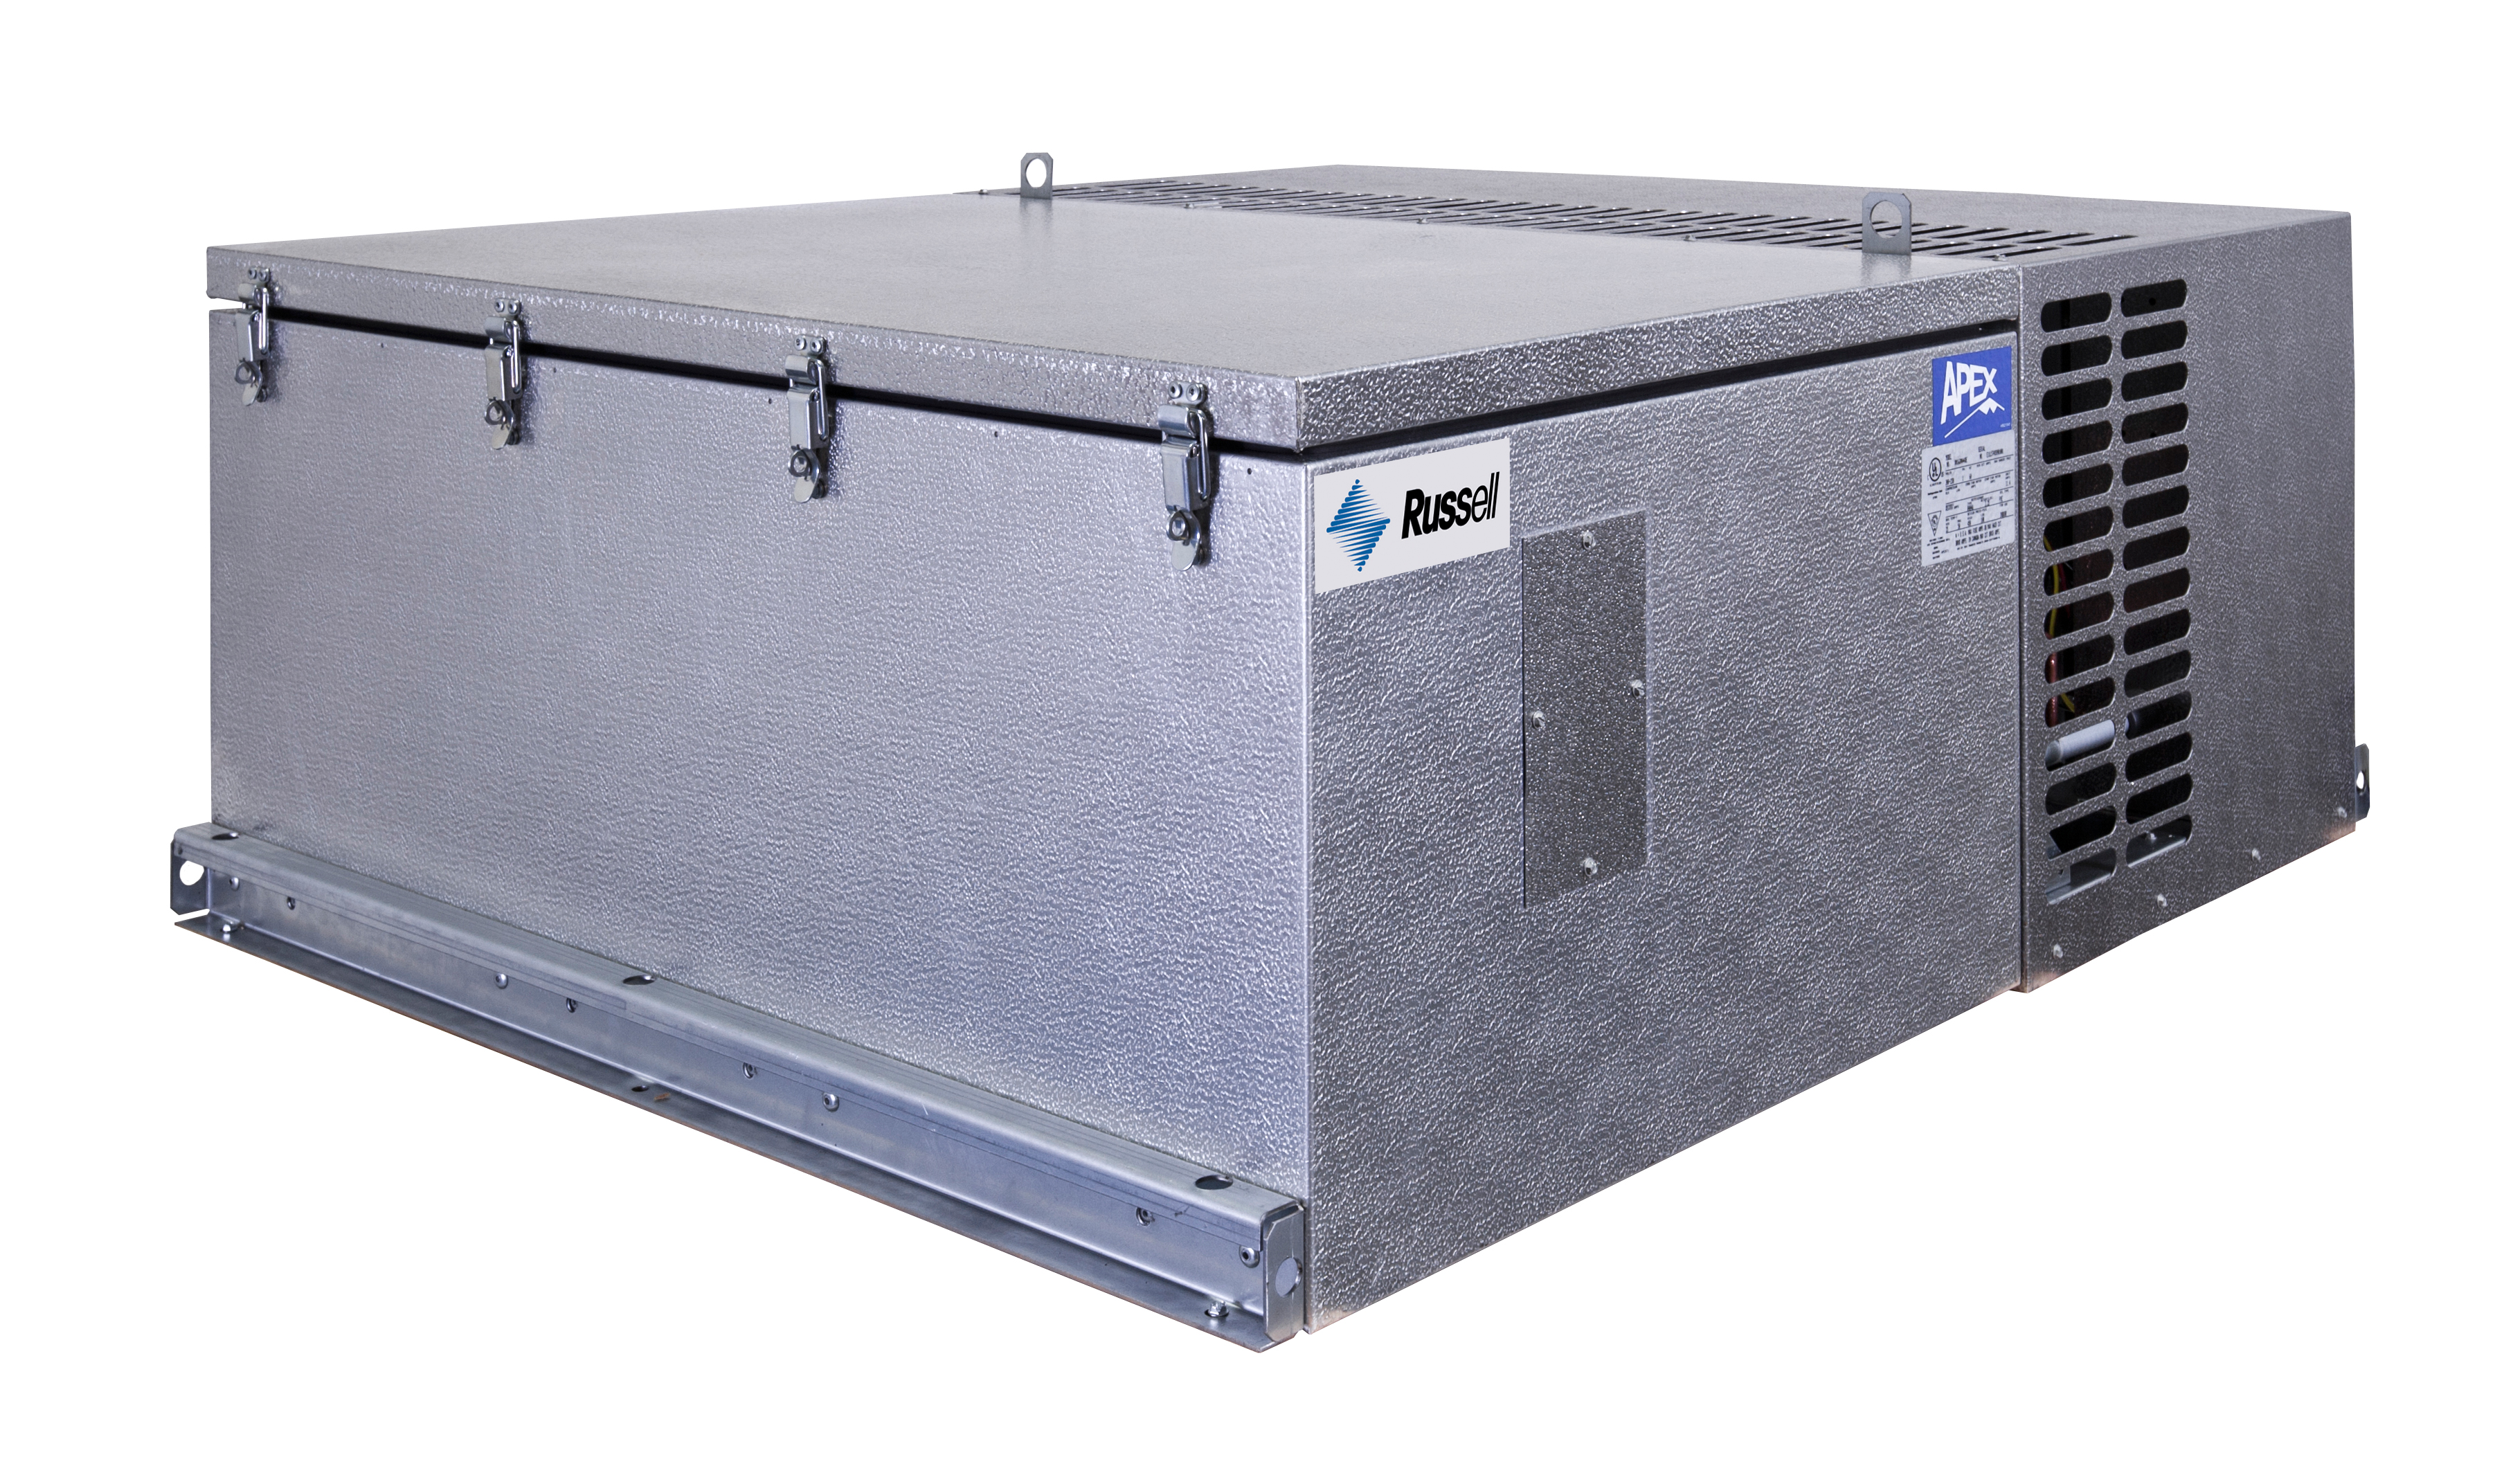 APEX Packaged Systems